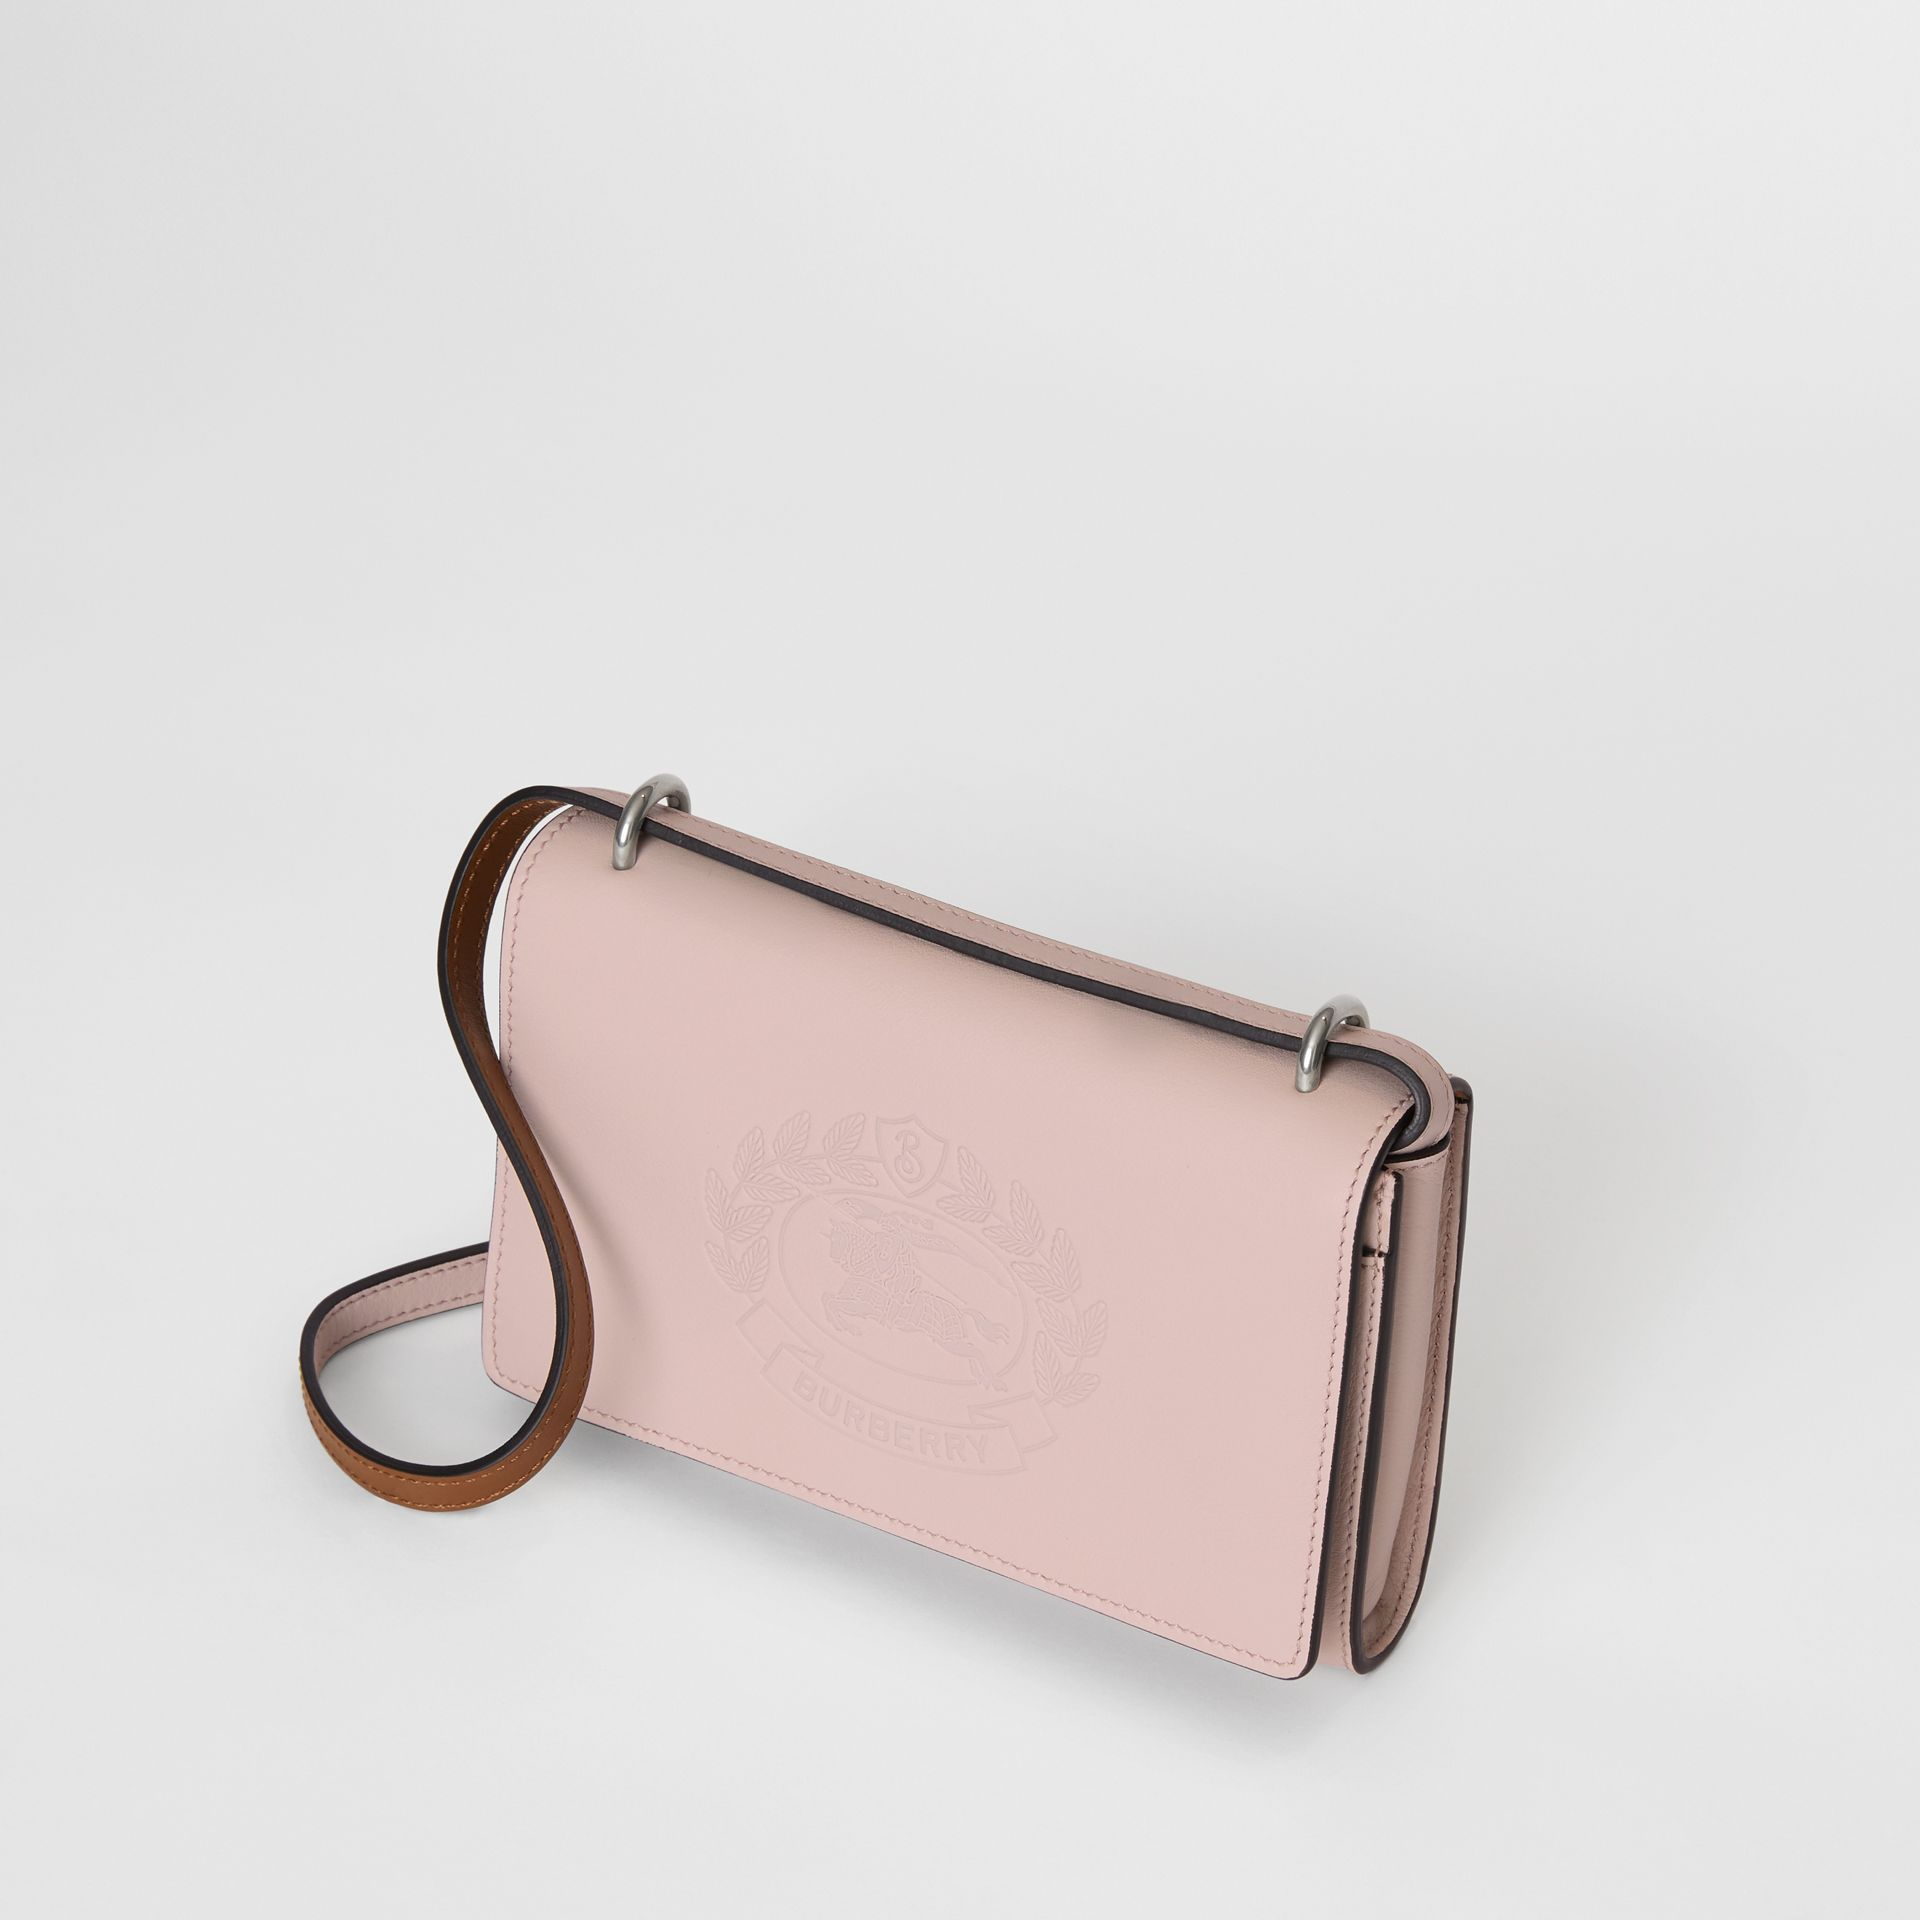 Embossed Crest Leather Wallet with Detachable Strap in Chalk Pink - Women | Burberry United Kingdom - gallery image 4